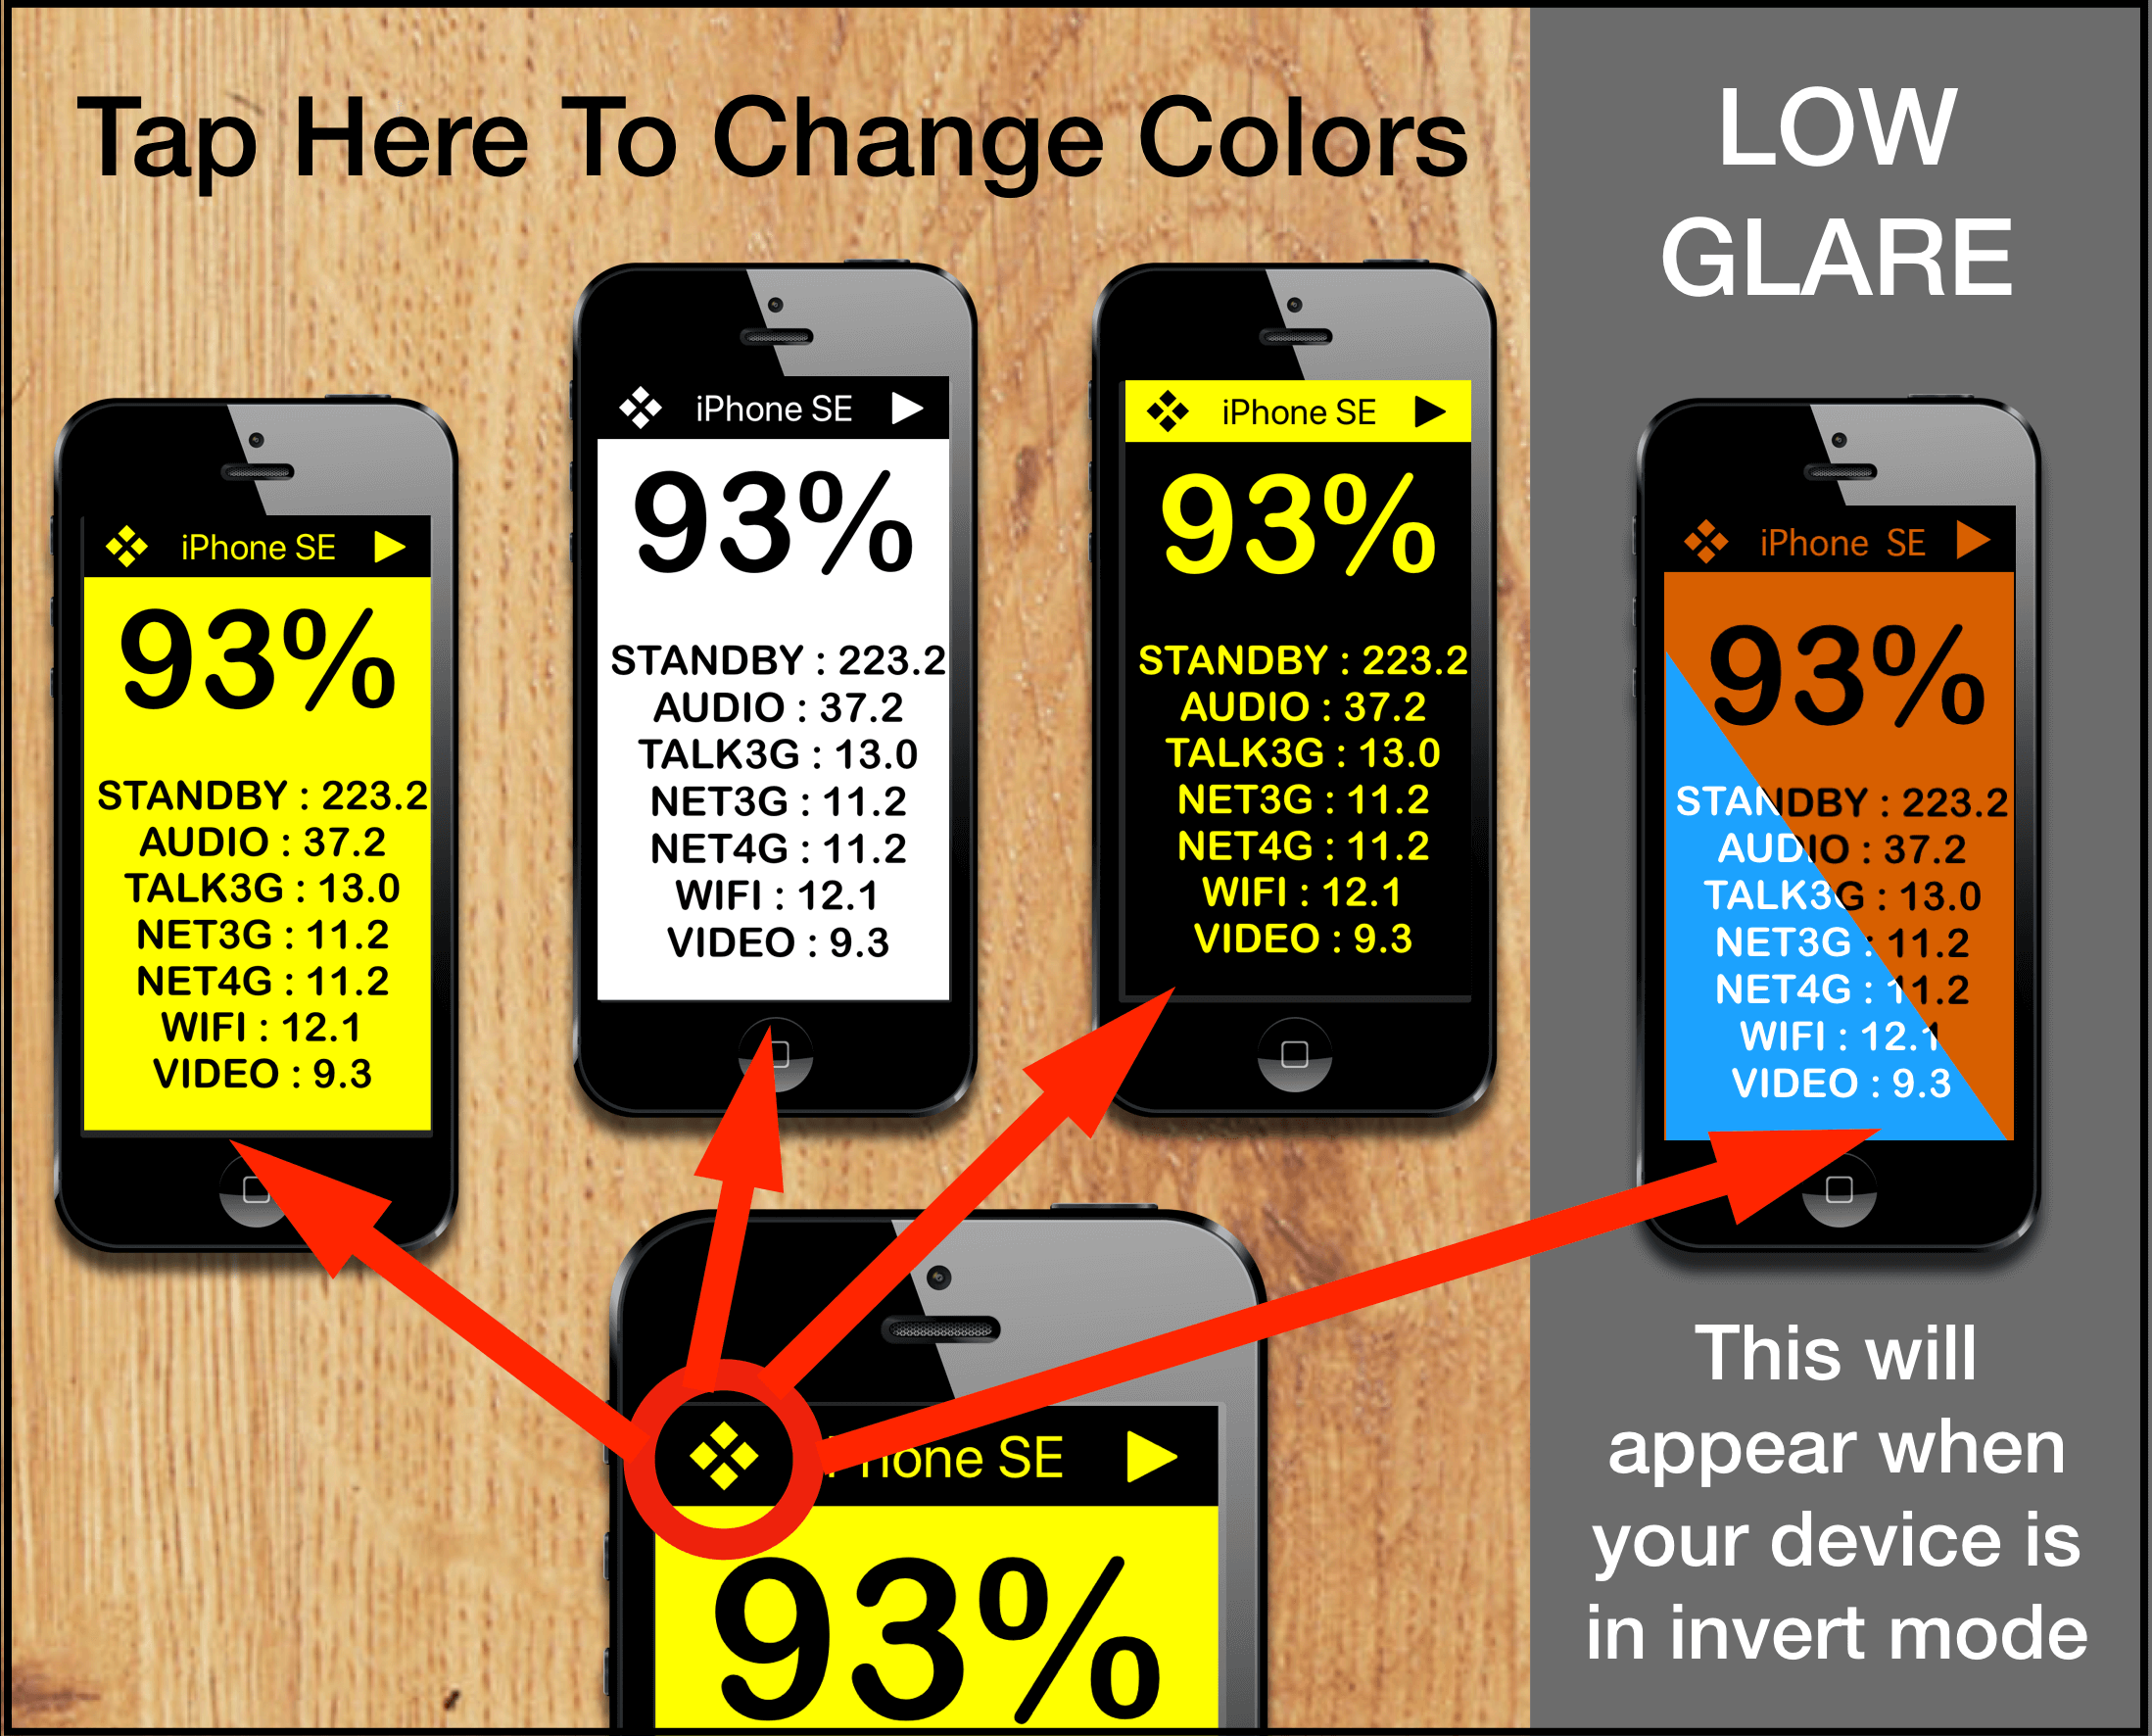 Big Battery has 4 High contrast color modes for Visual Impairment